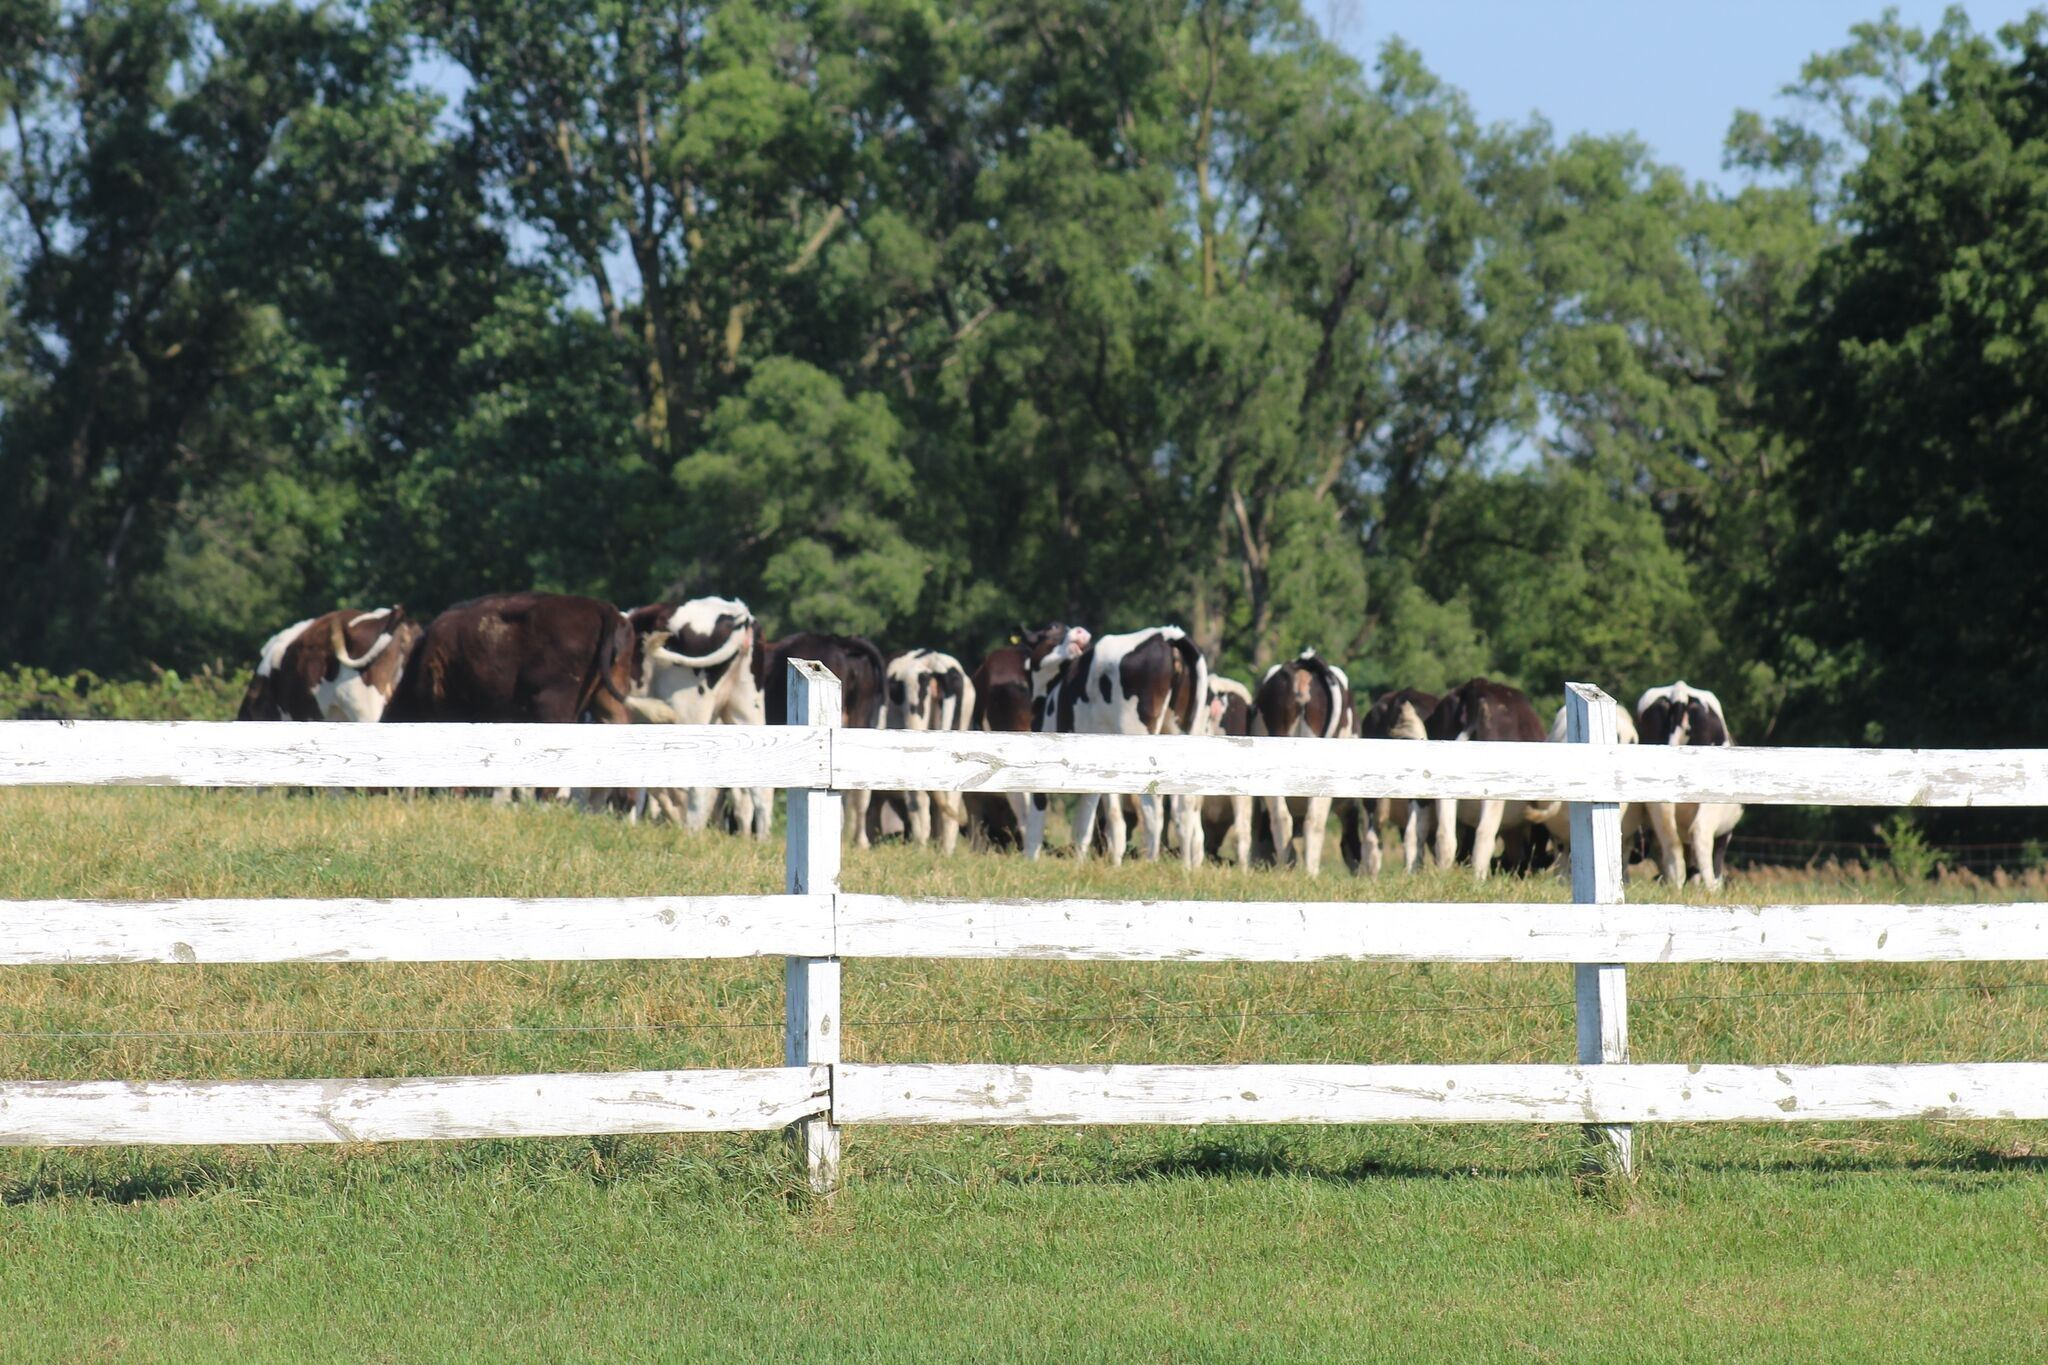 Cows at Pasture at Henricks-Krieger Dairy Farm